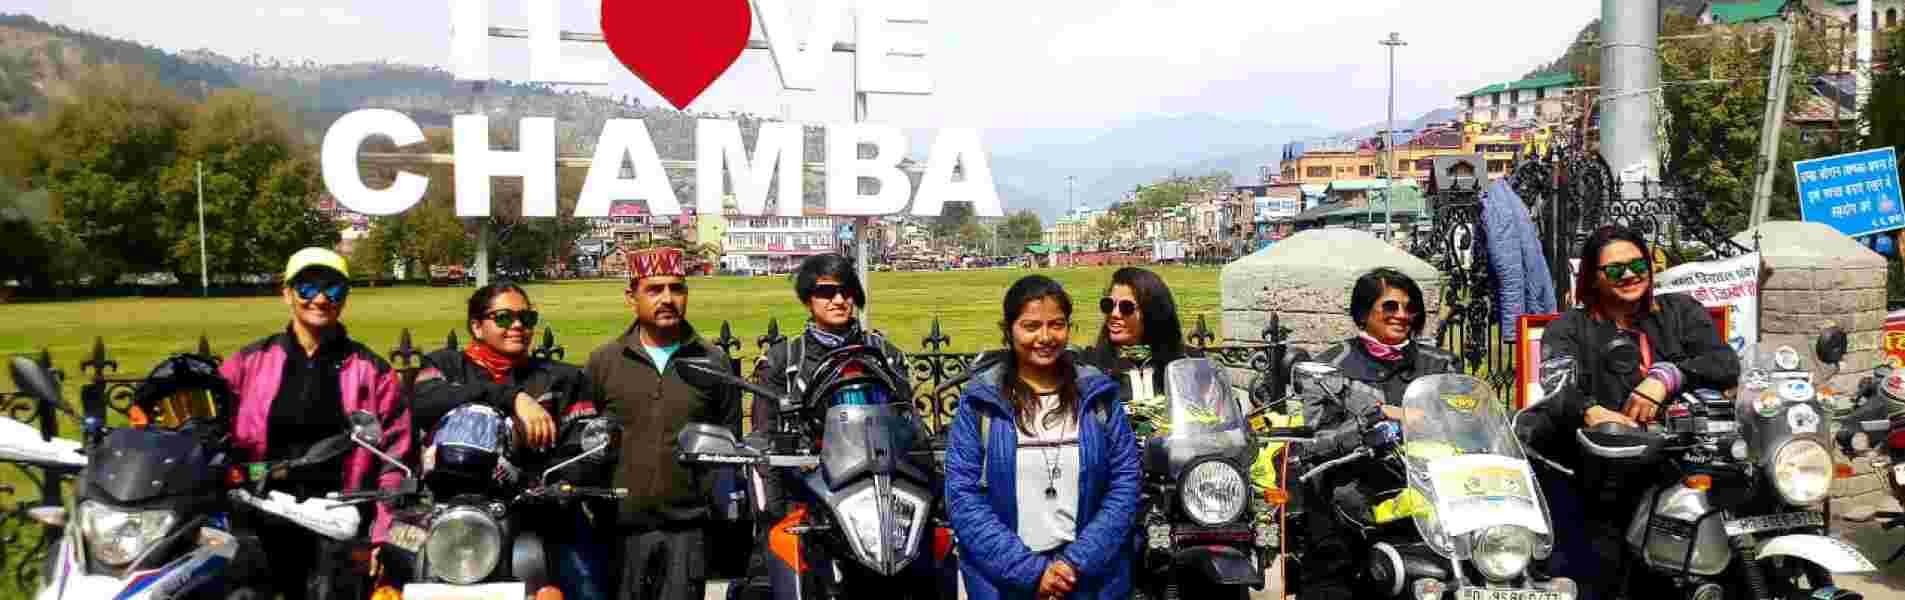 Traveling to Impact: WIMA in Chamba header image